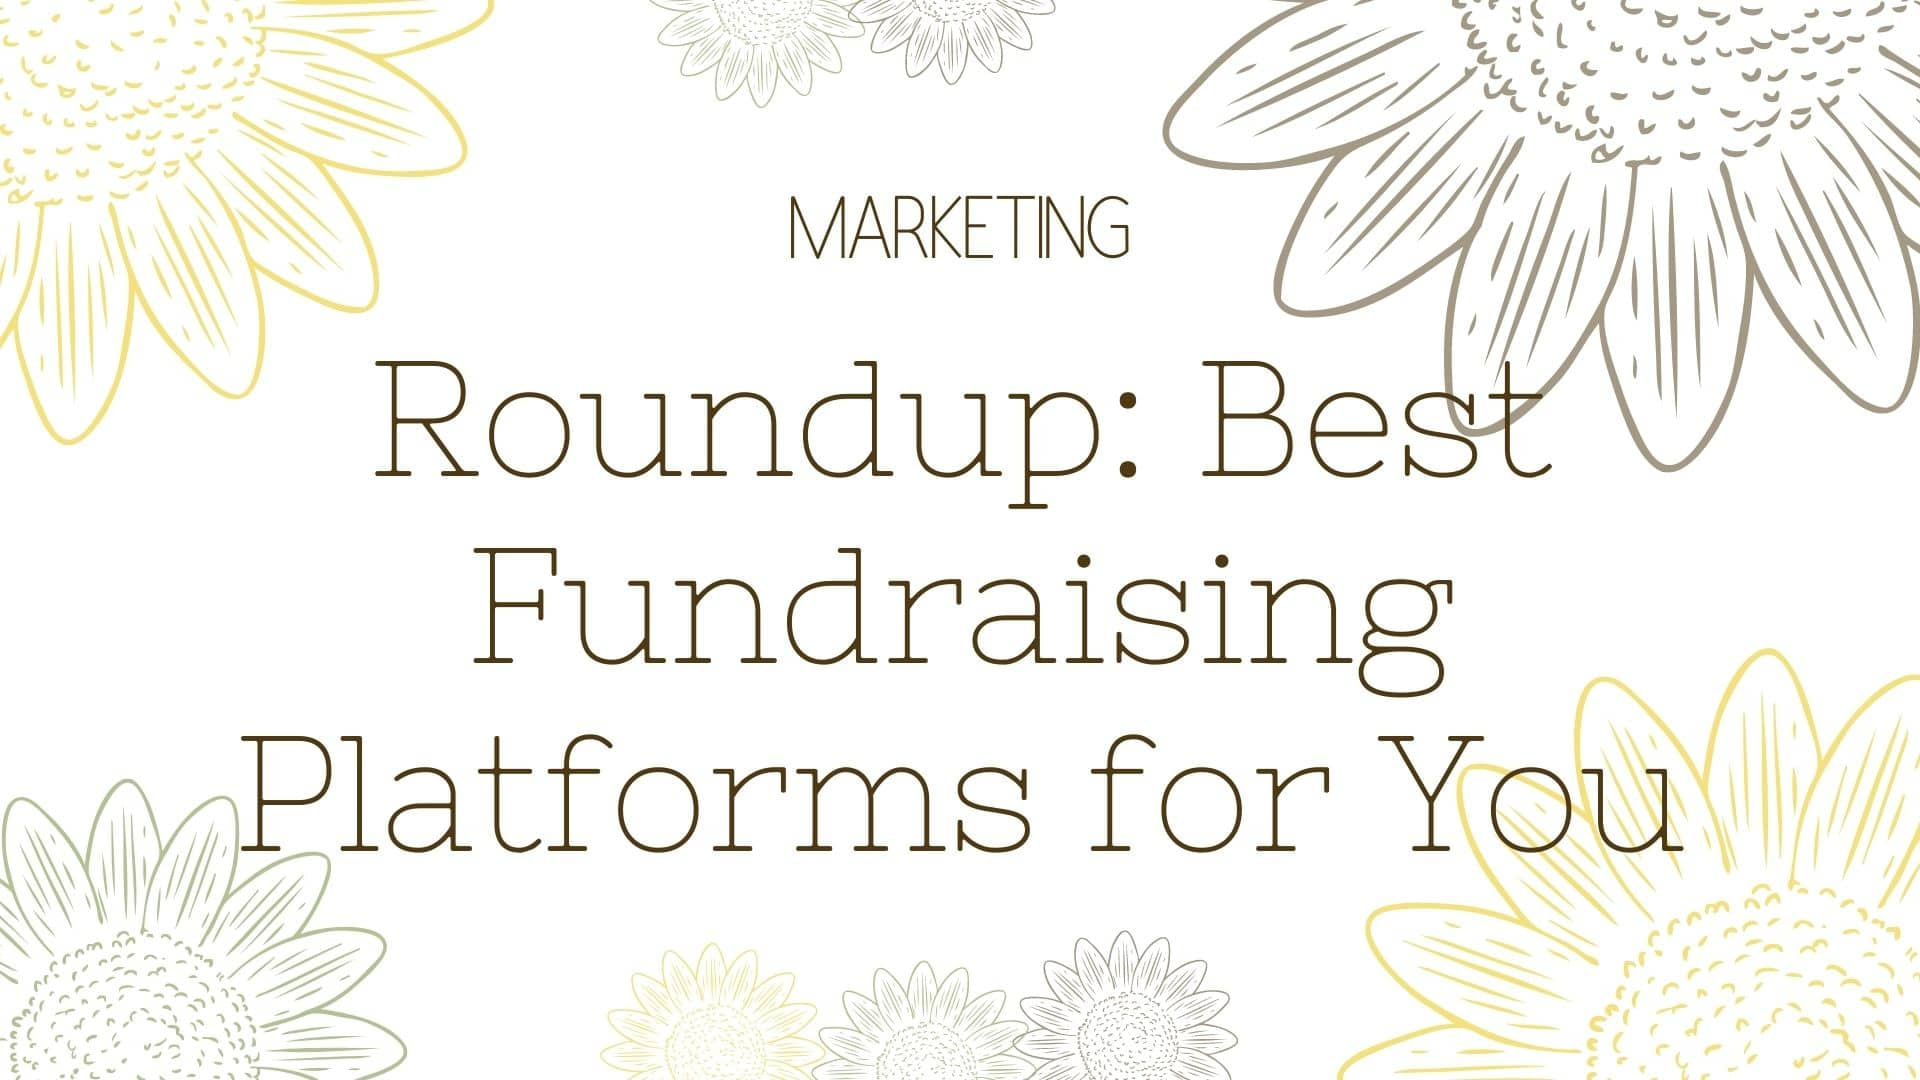 Roundup Best Fundraising Platforms for You